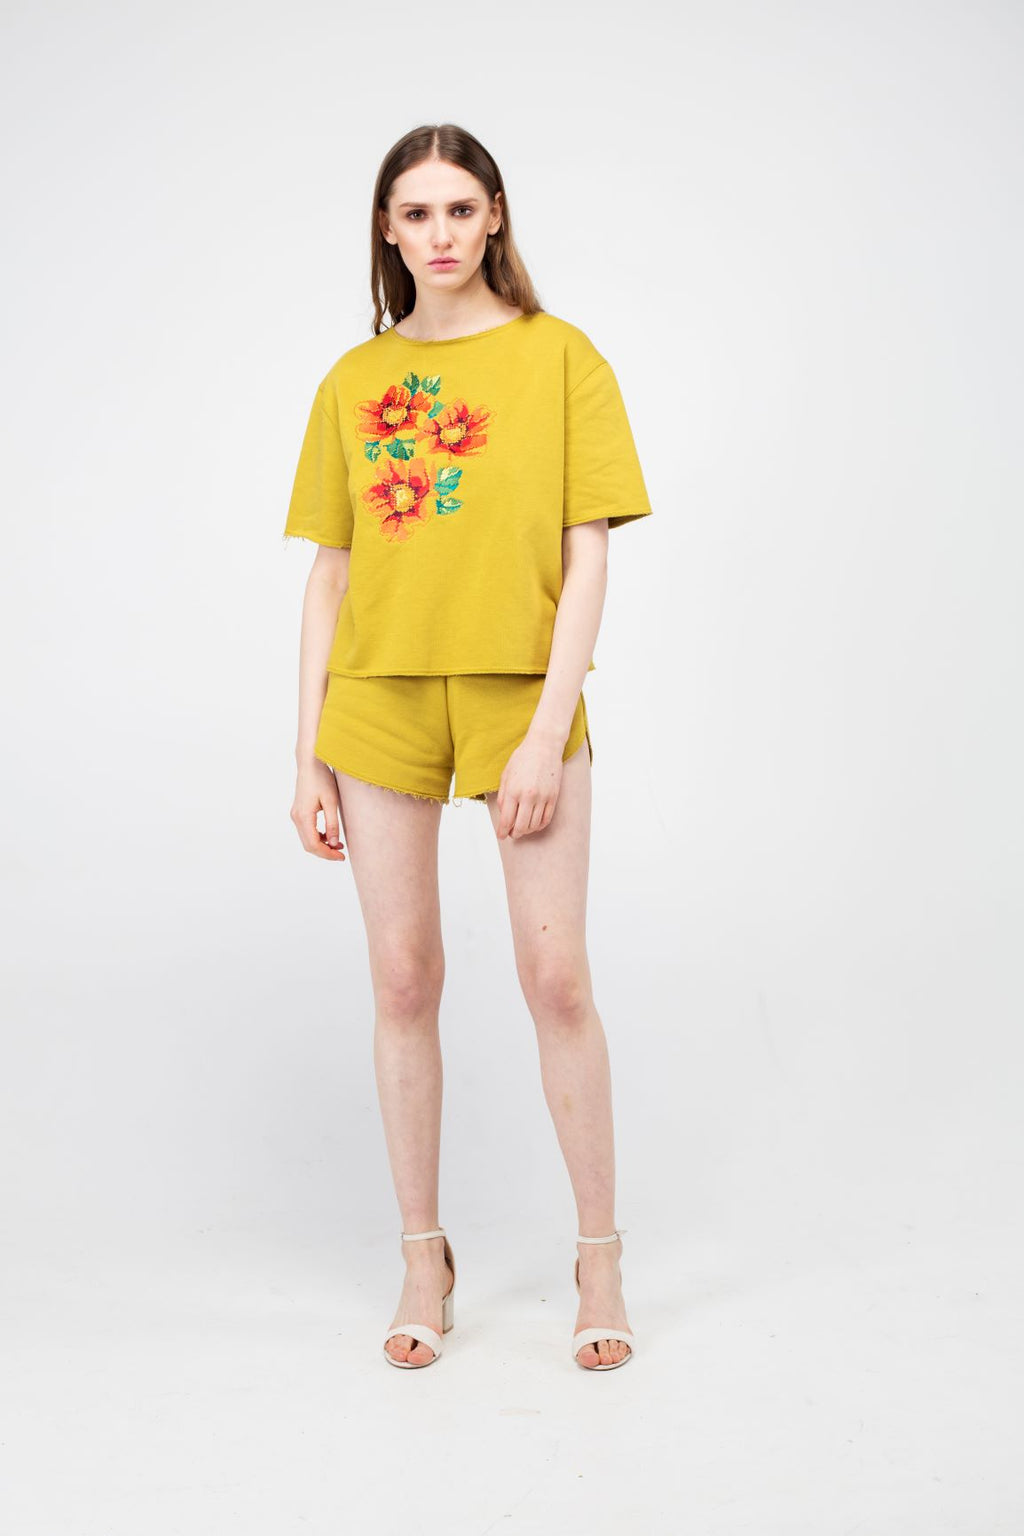 Embroidered Poppy Flower Girls Set in Wattle color - LAZY FRANCIS - Shop in store at 406 Kings Road, Chelsea, London or shop online at www.lazyfrancis.com